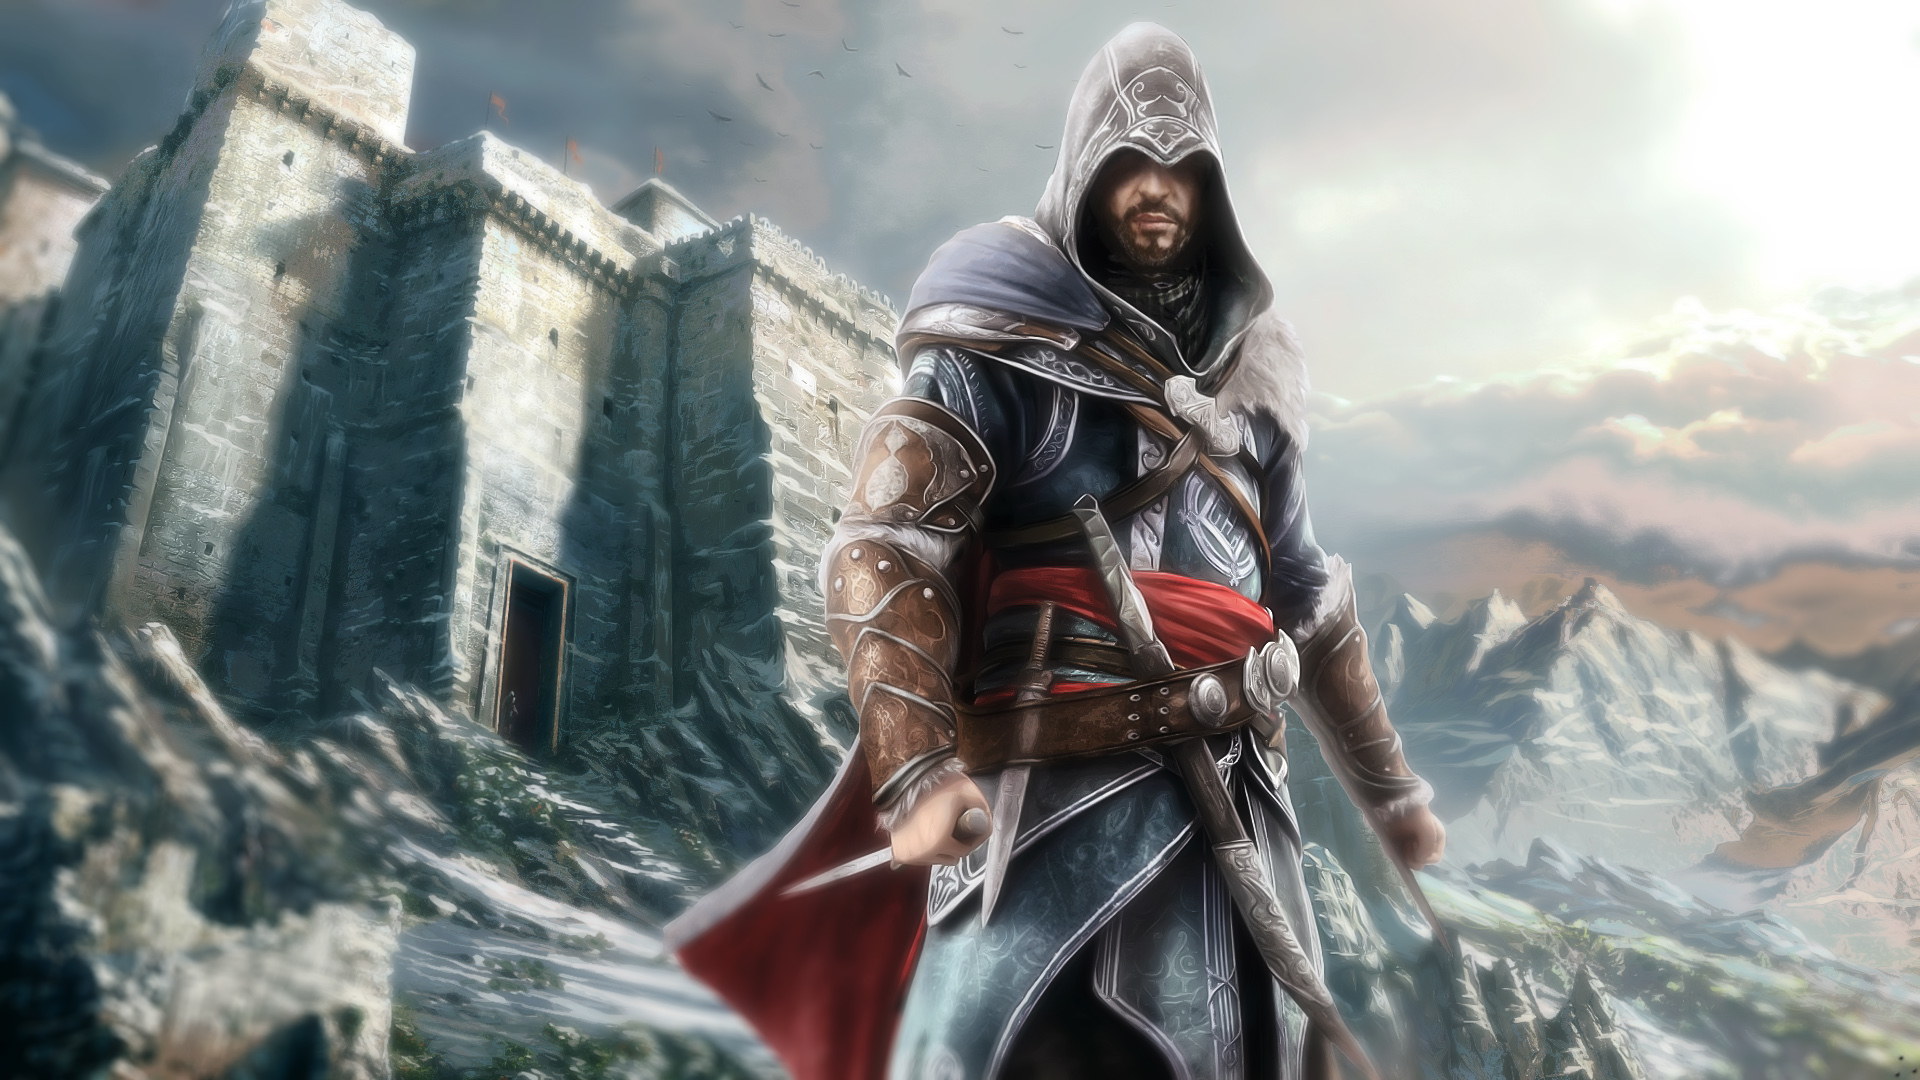 65 Assassin's Creed: Revelations HD Wallpapers | Backgrounds ...